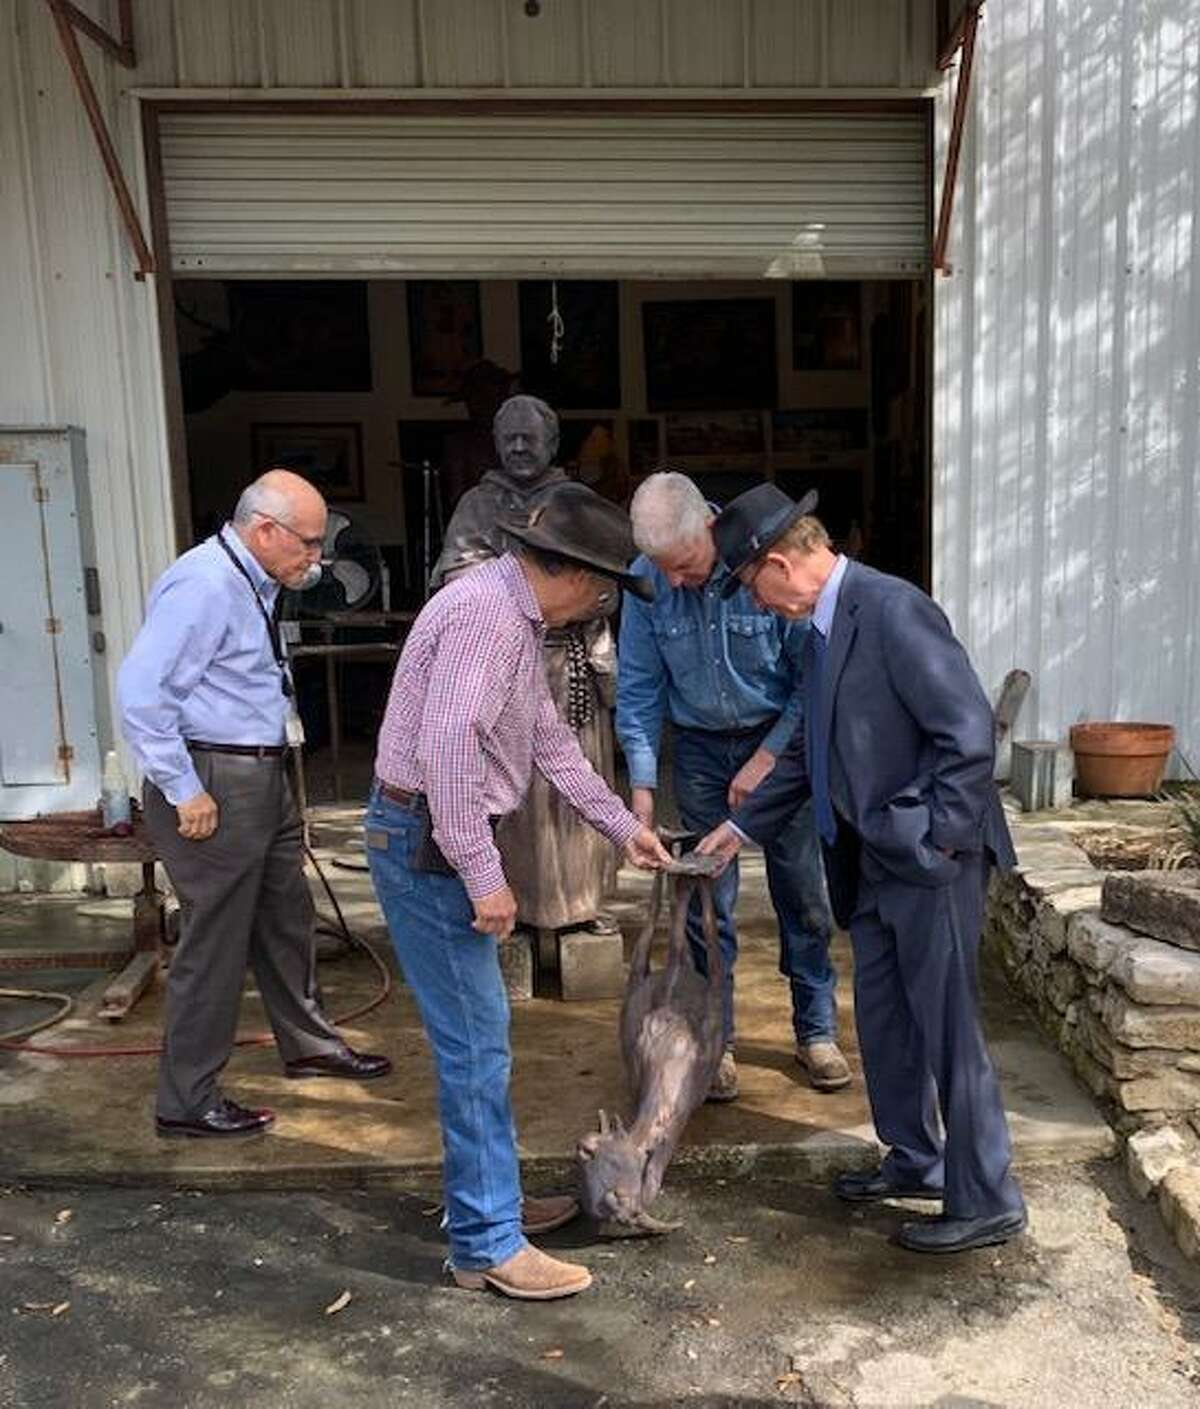 Bexar County Judge Nelson Wolff (right) and Laredo artist Armando Hinojosa examine a bronze sculpture of a goat, with a figure of a Franciscan friar in the background, at Stevens Art Foundry in Bulverde. The pieces crafted by Hinojosa are part of a Founders Monument to be unveiled Saturday in Main Plaza. Also shown are County Architect Oscar Cervantes (left) and Larry Stevens, foundry owner (background).